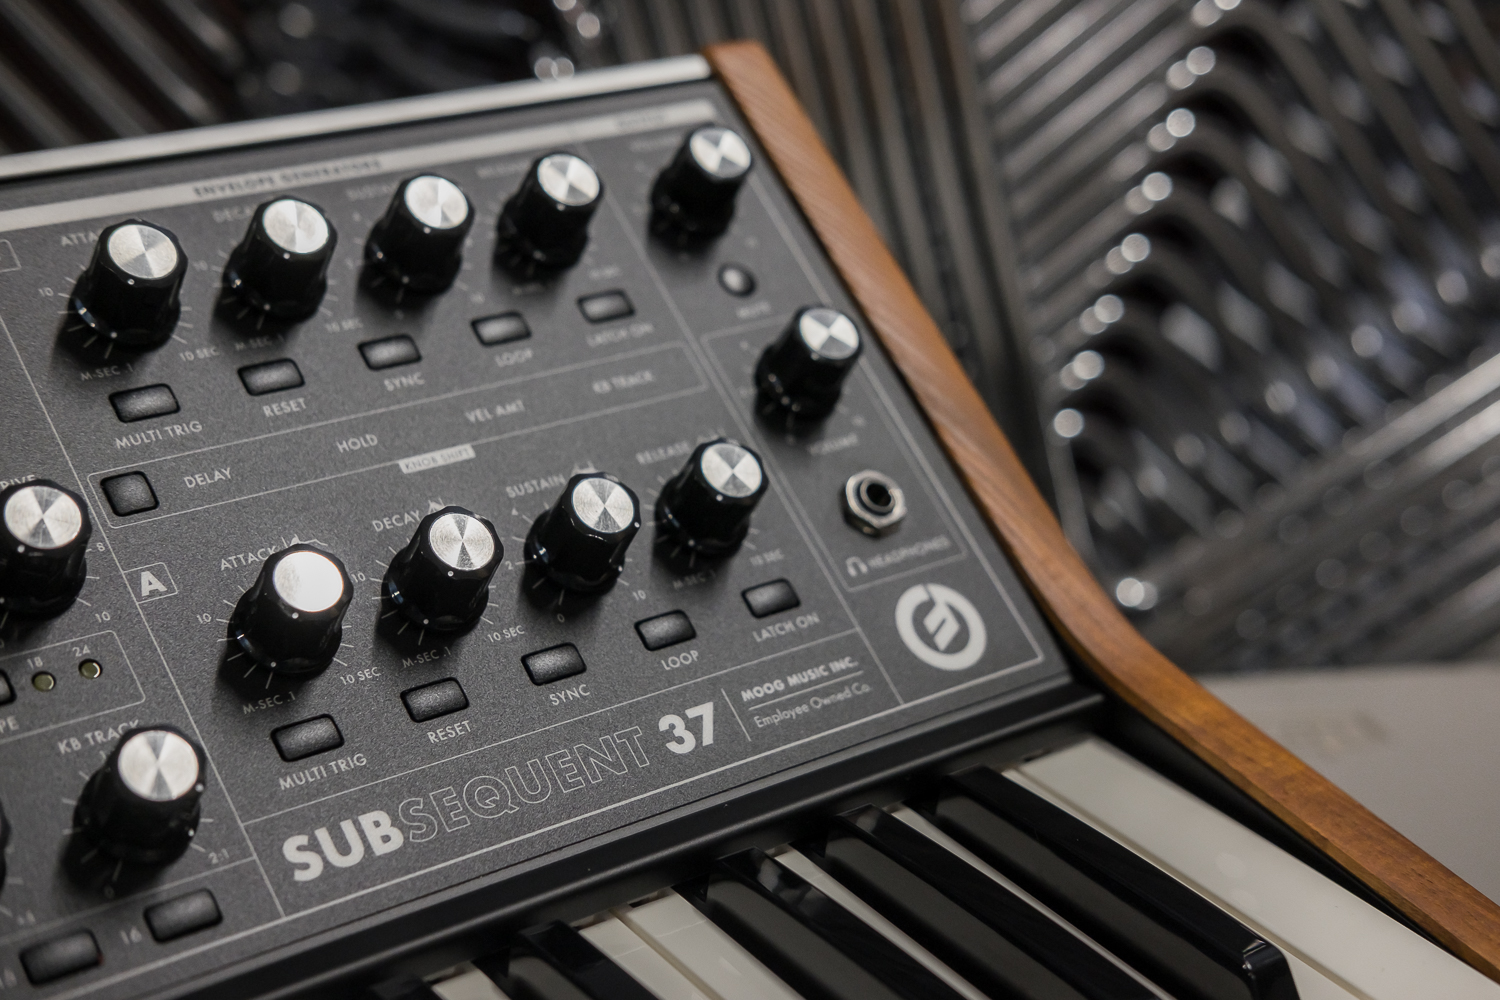 moog-subsequent-37-itw-10.jpg